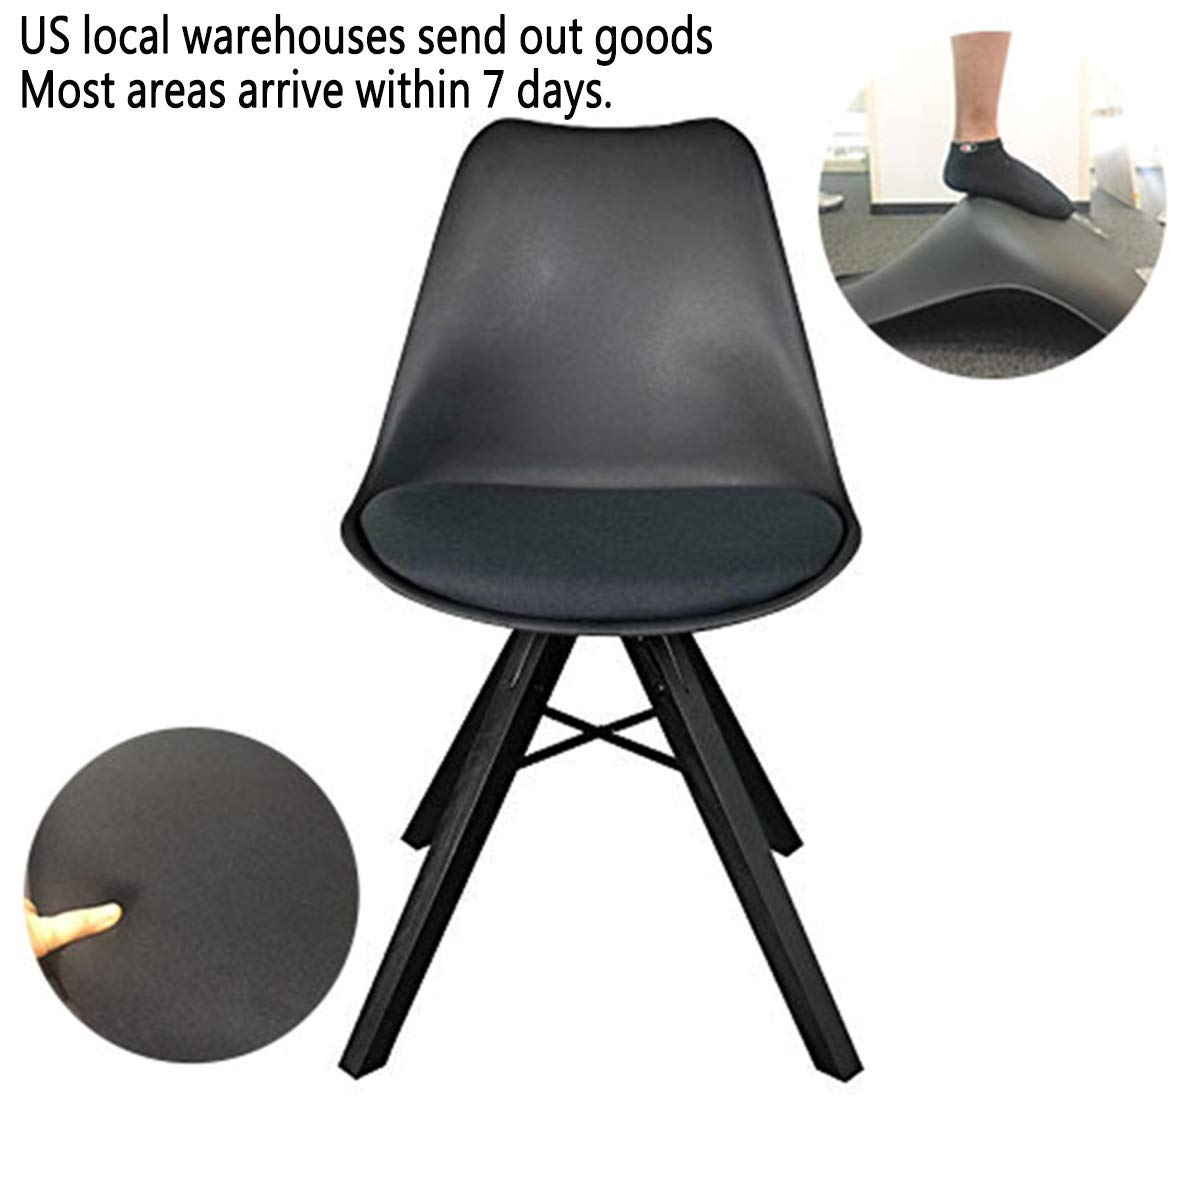 YURUCY Office Chair Simple Modern Chair Mid Century Modern Wood Assembled Legs Sturdy Retro Chair for Kitchen Dining Room Bedroom Living Room(1pcs-Black)